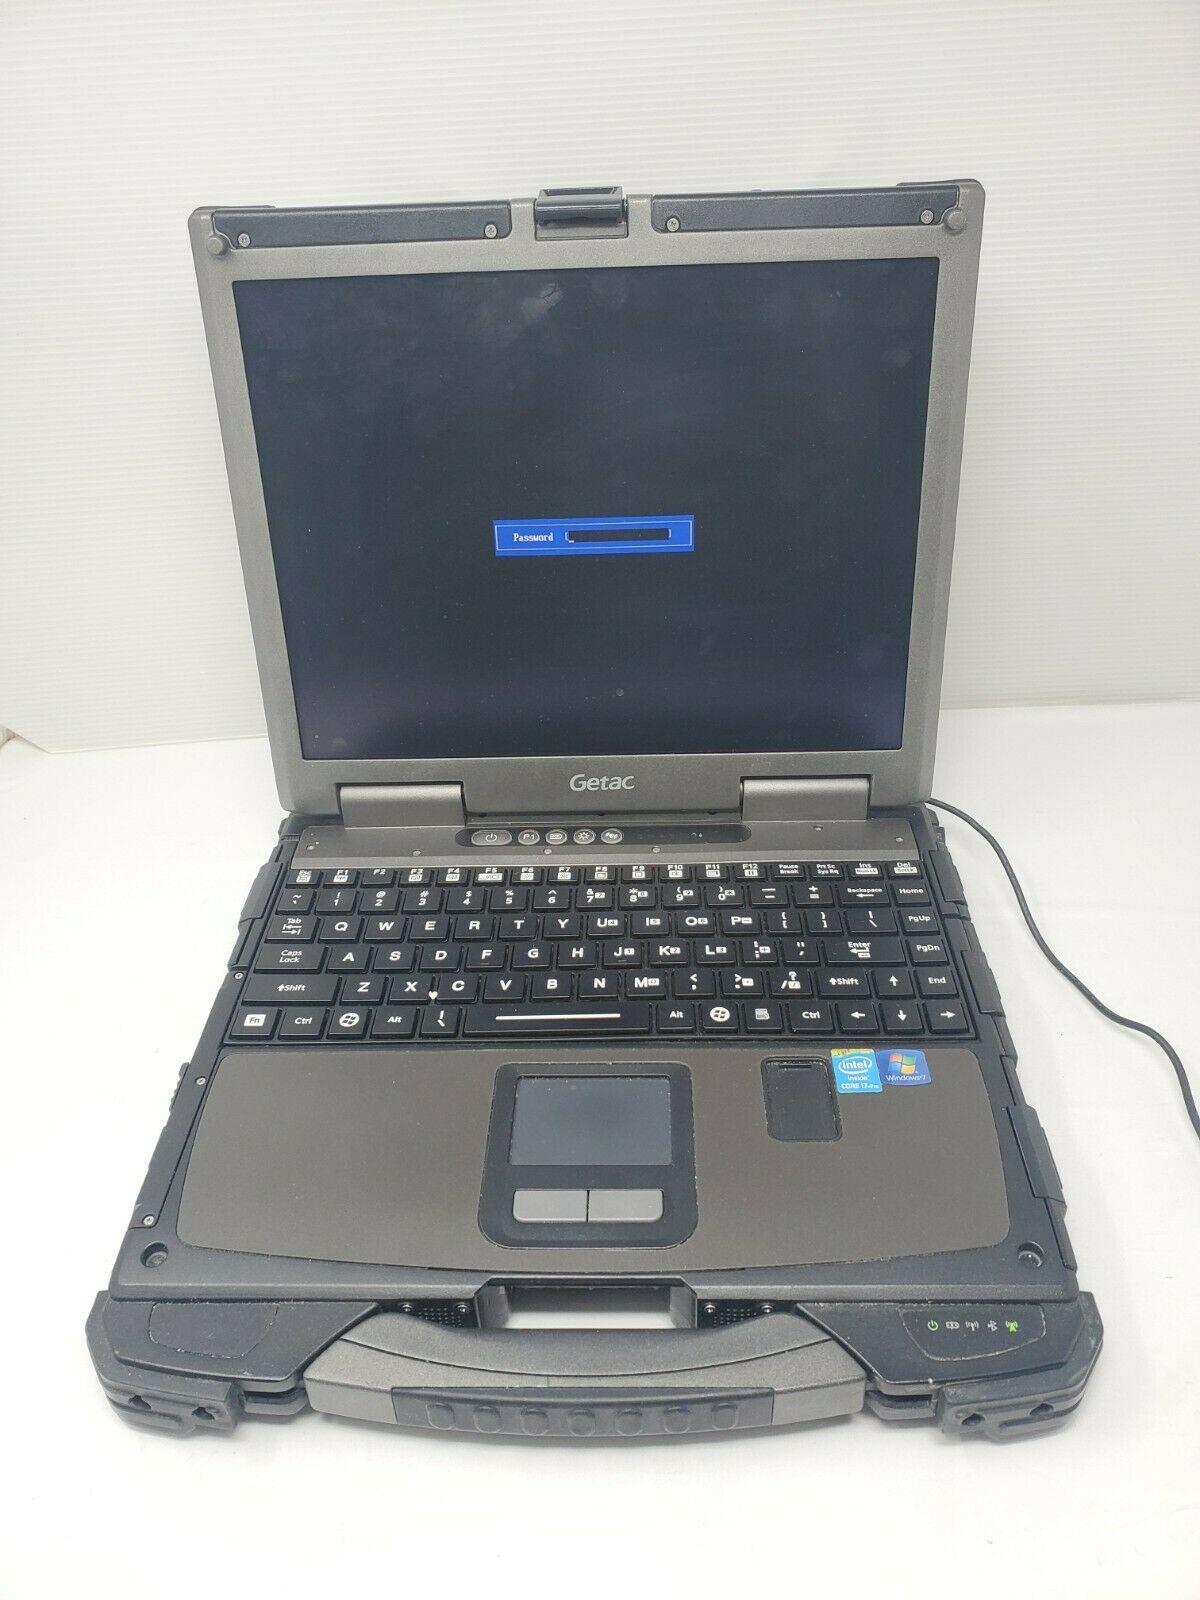 For parts BIOS LOCKED Getac B300 G5 Rugged Laptop i7-4600M, 4GB NO HDD#80. Buy it now for 199.00